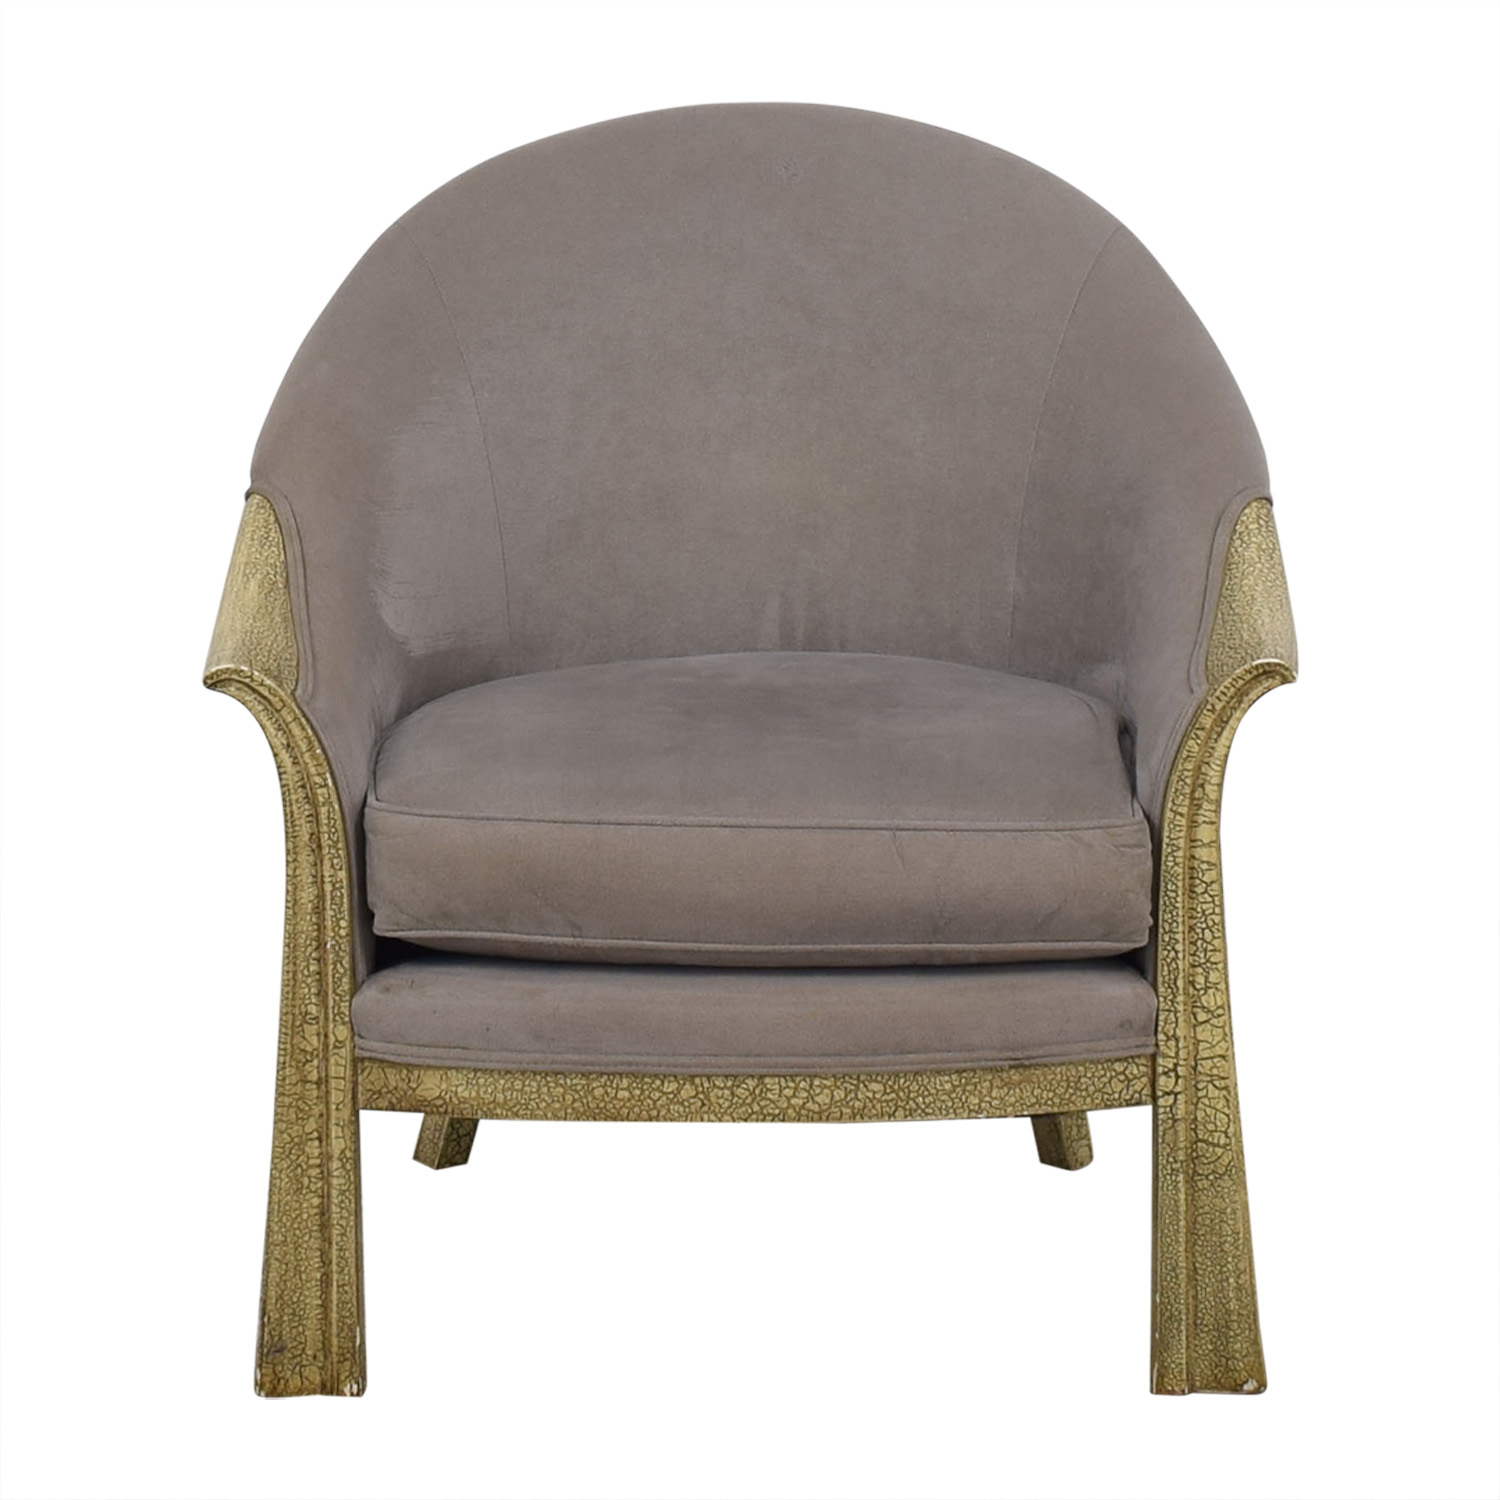 Interior Crafts Interior Crafts Deco Arm Chair for sale